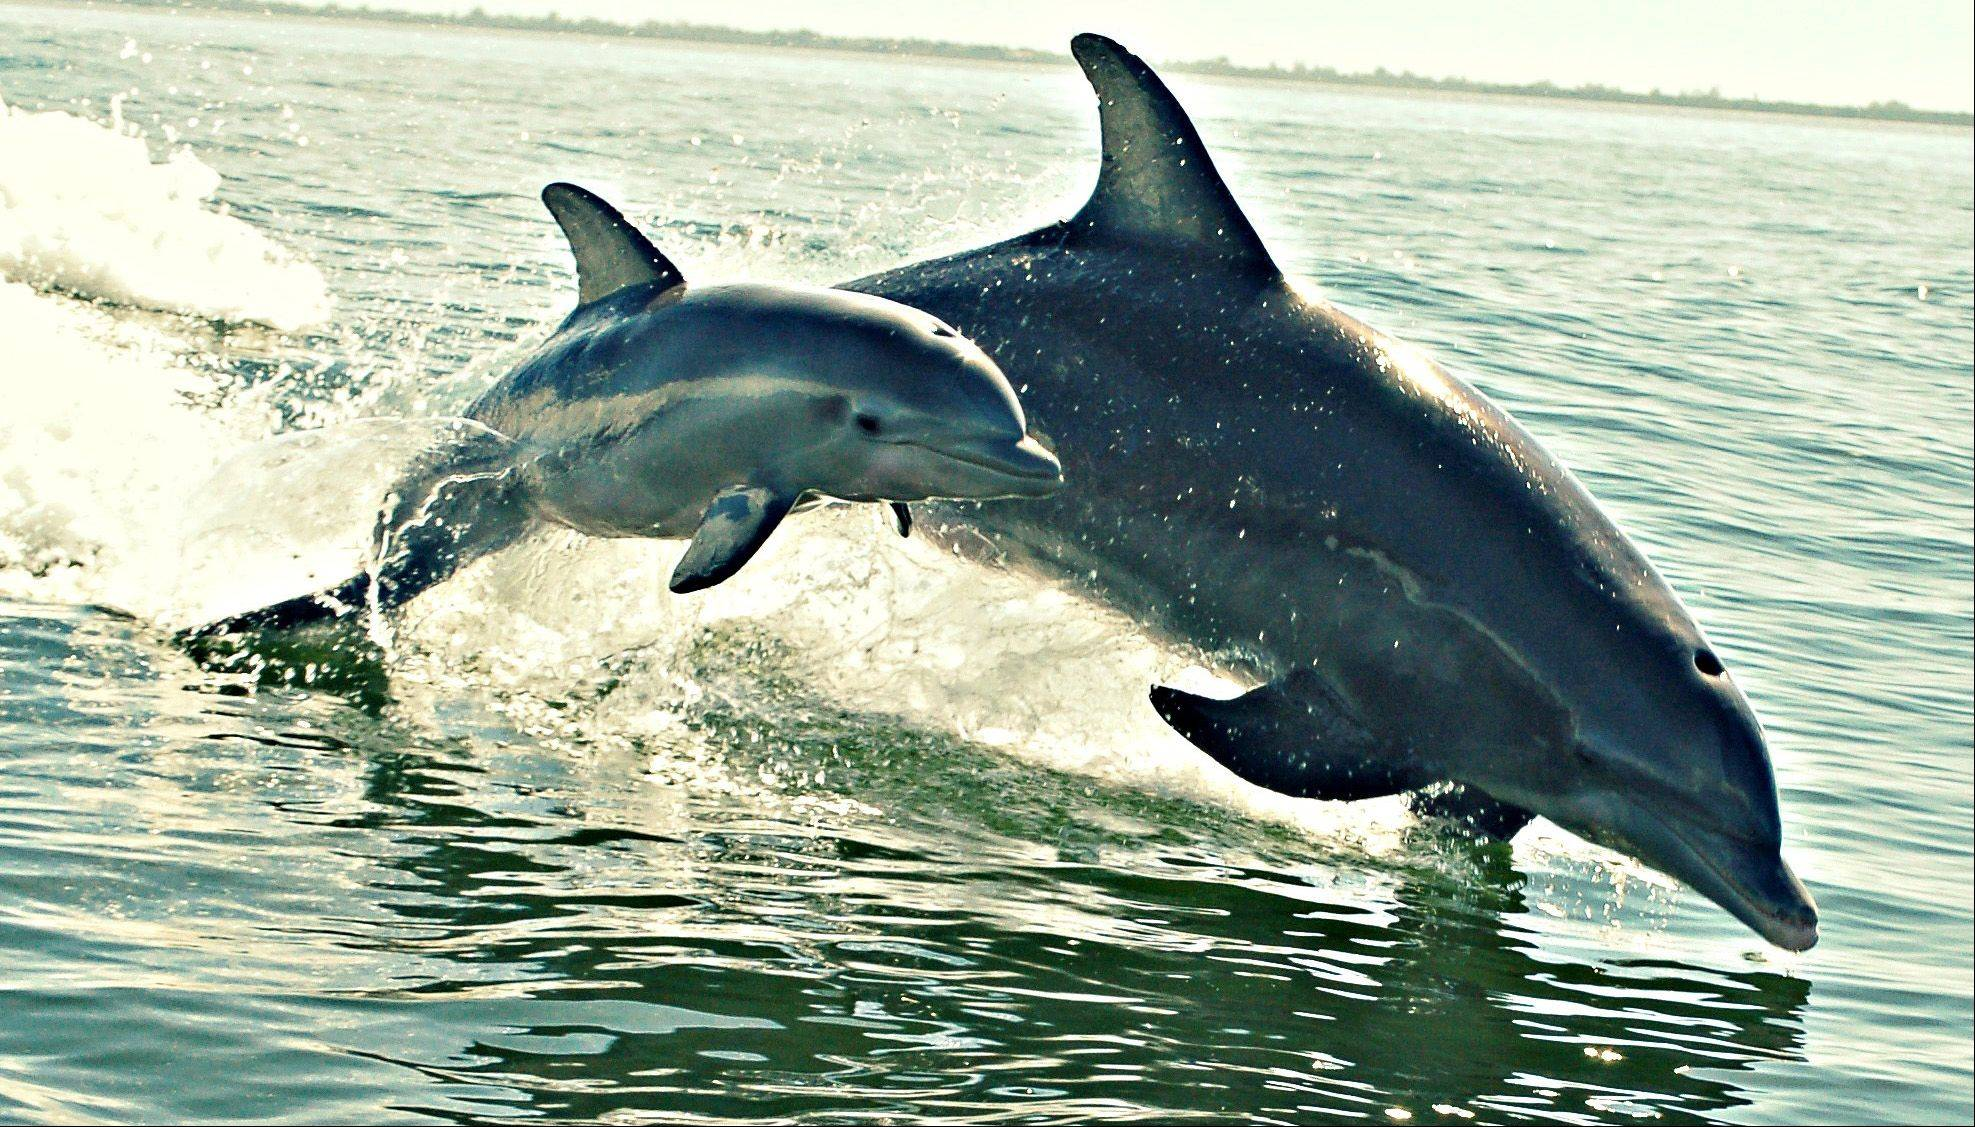 This is a mother dolphin and her calf in Sanibel Island, FL shot last month.